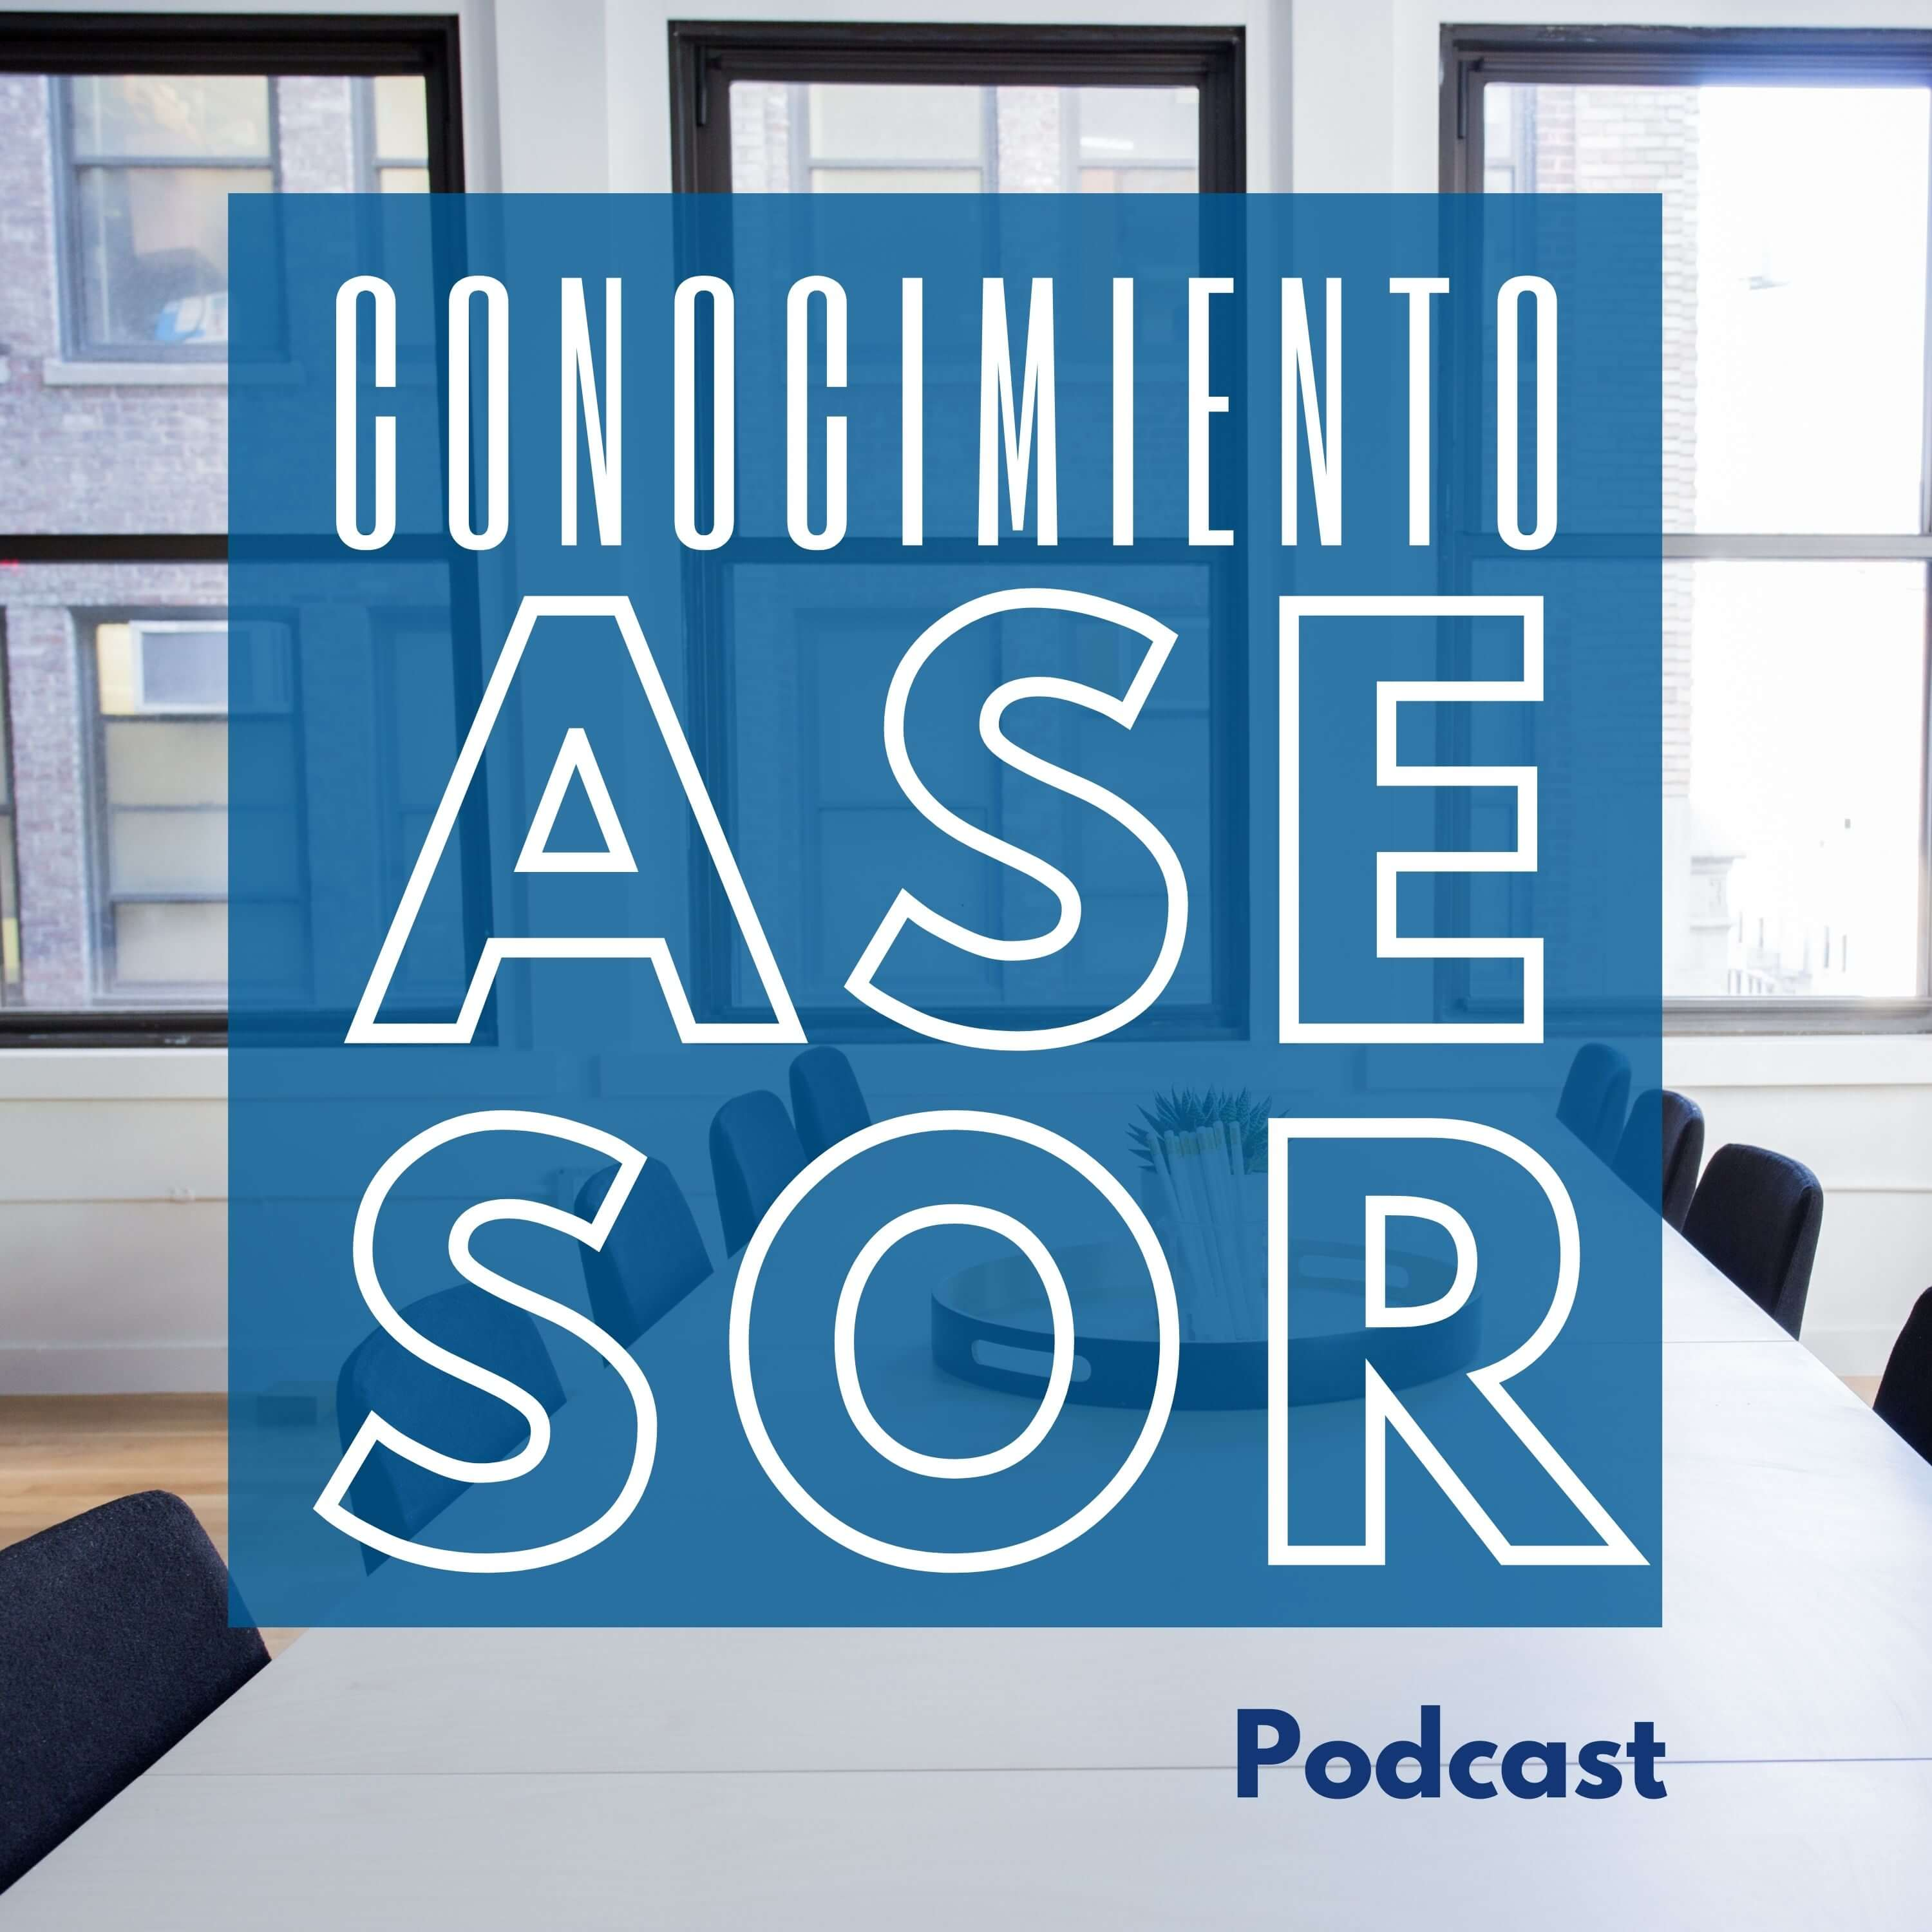 Artwork for podcast Conocimiento Asesor